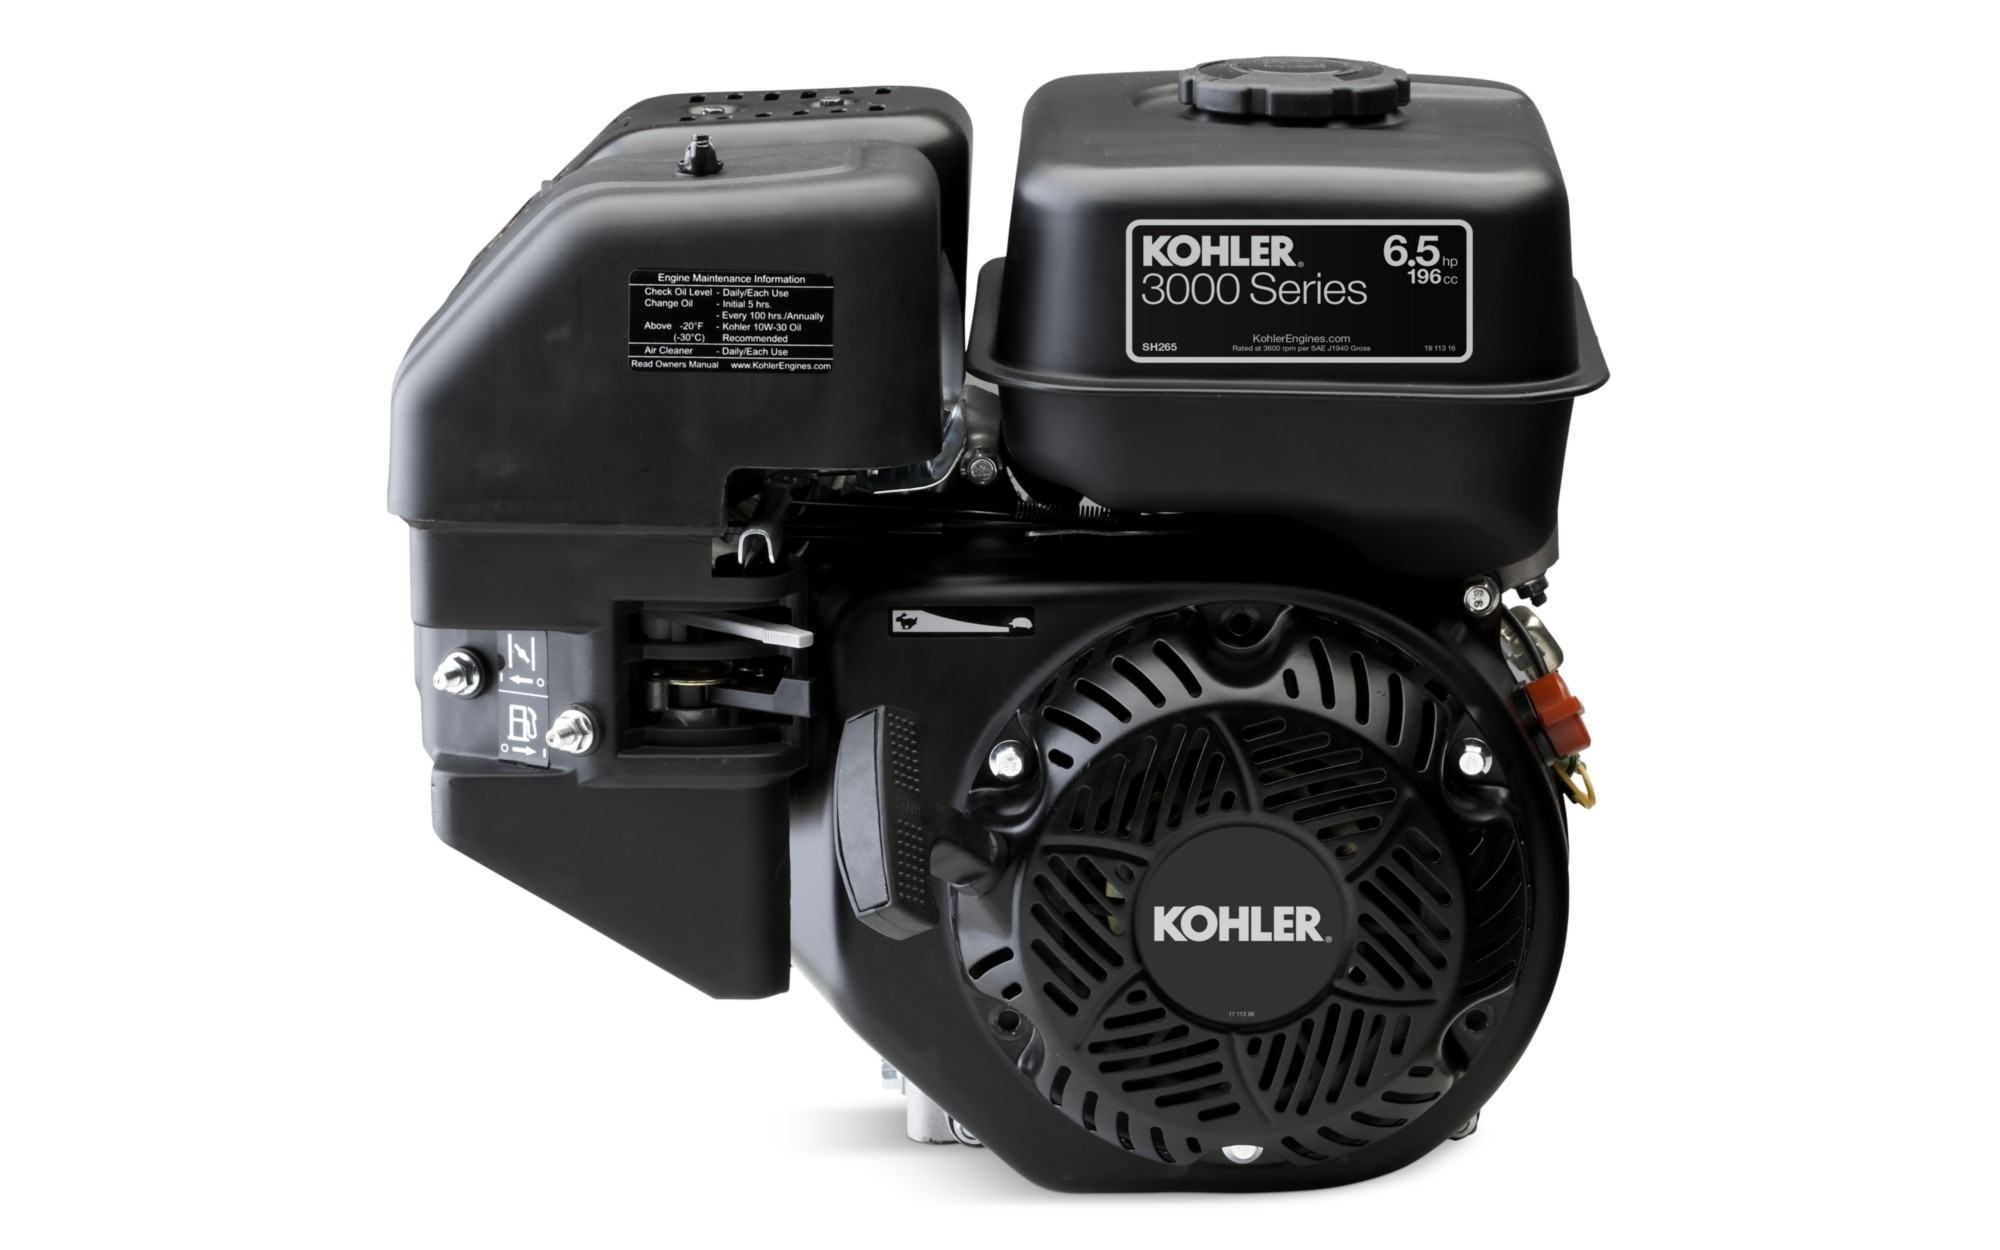 SH265 | 3000 Series | KOHLER on